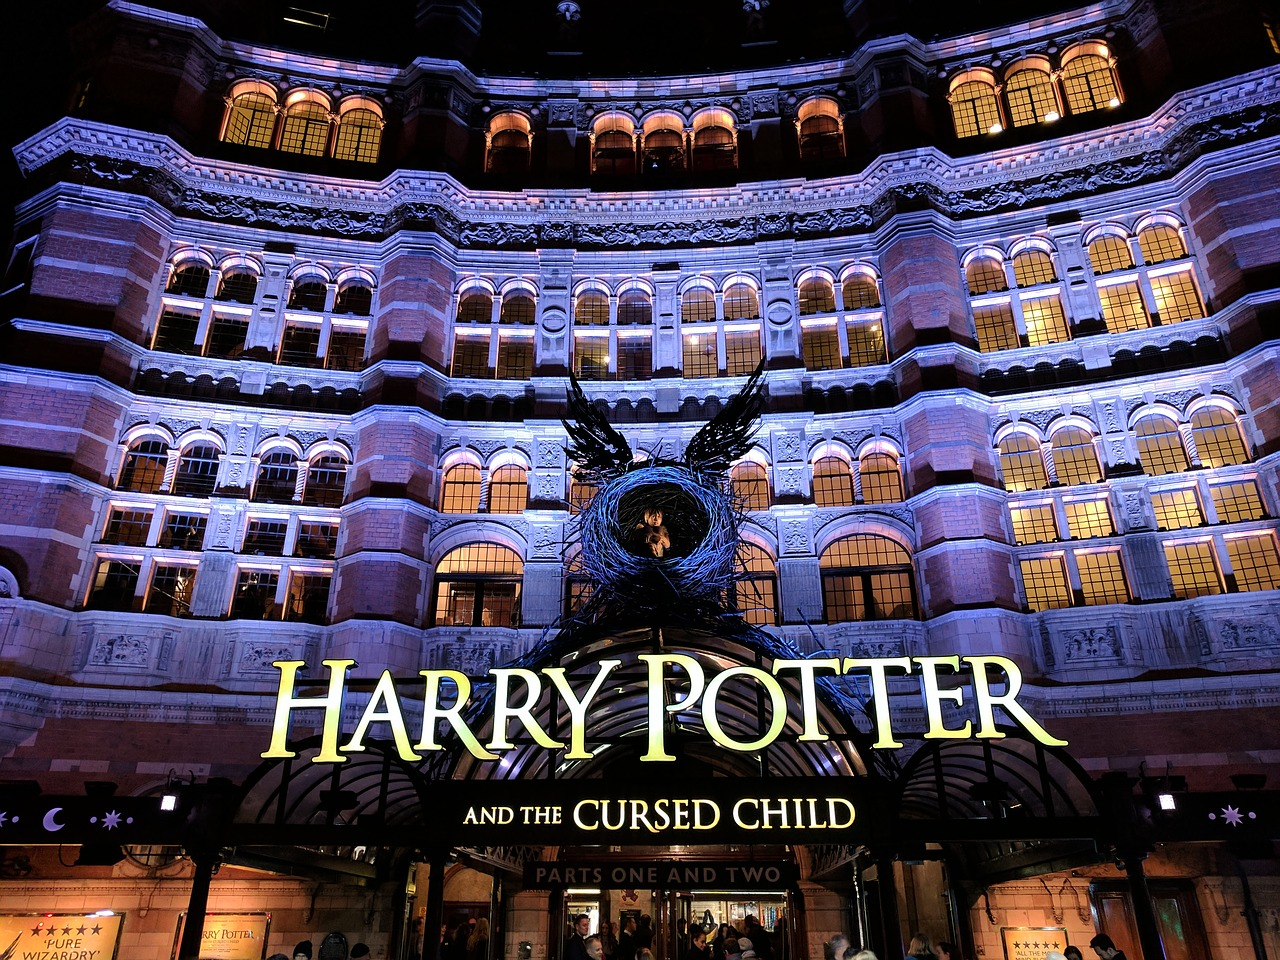 Harry Potter the Cursed Child theatre